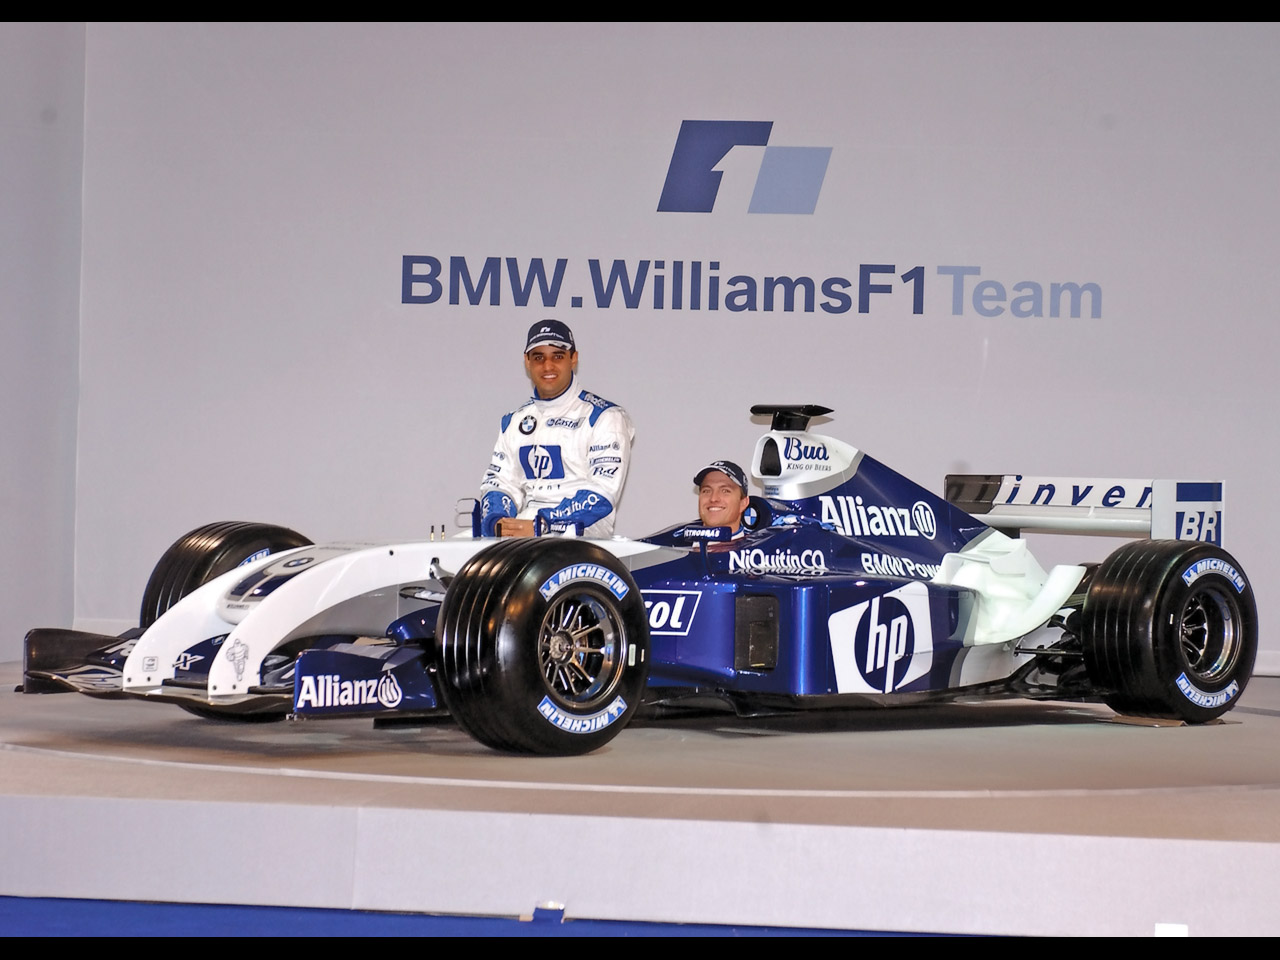 Williams fw26 photo - 2